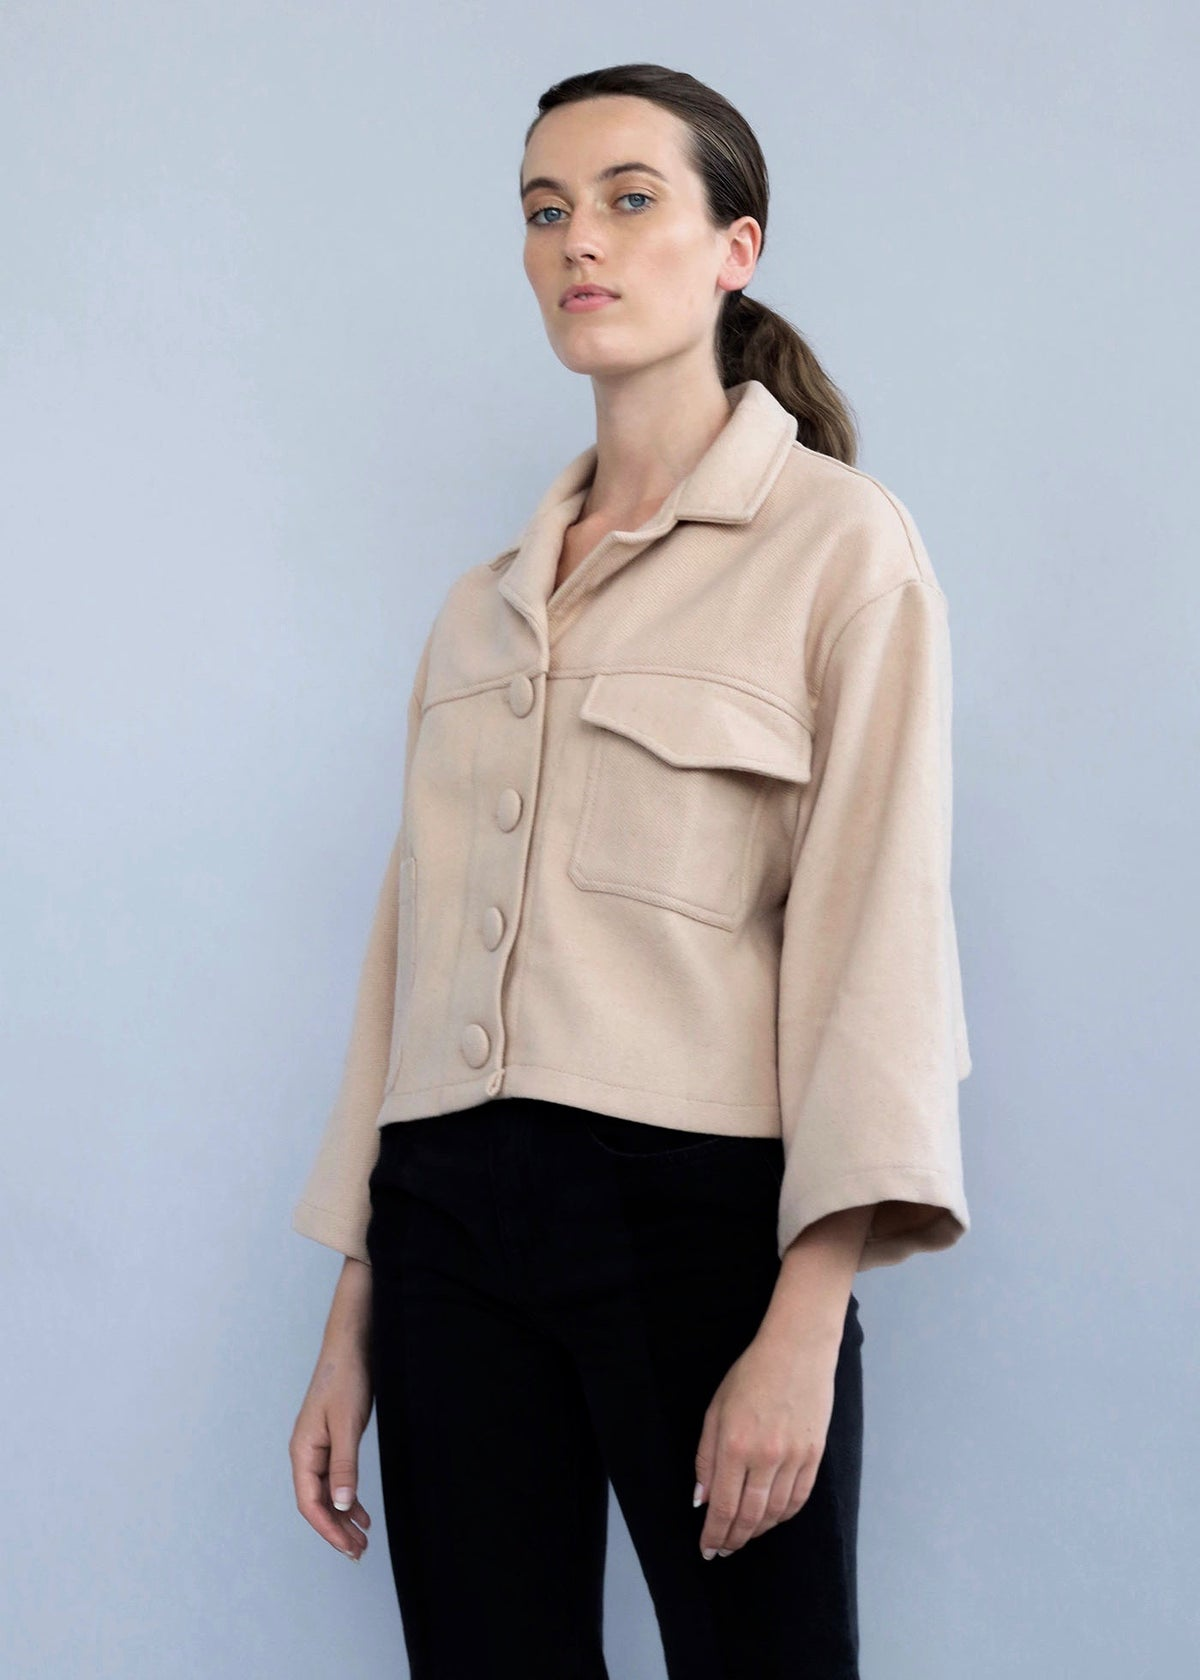 Beige handmade Wool Cropped Utility Jacket featuring two real front pockets from Selfi.